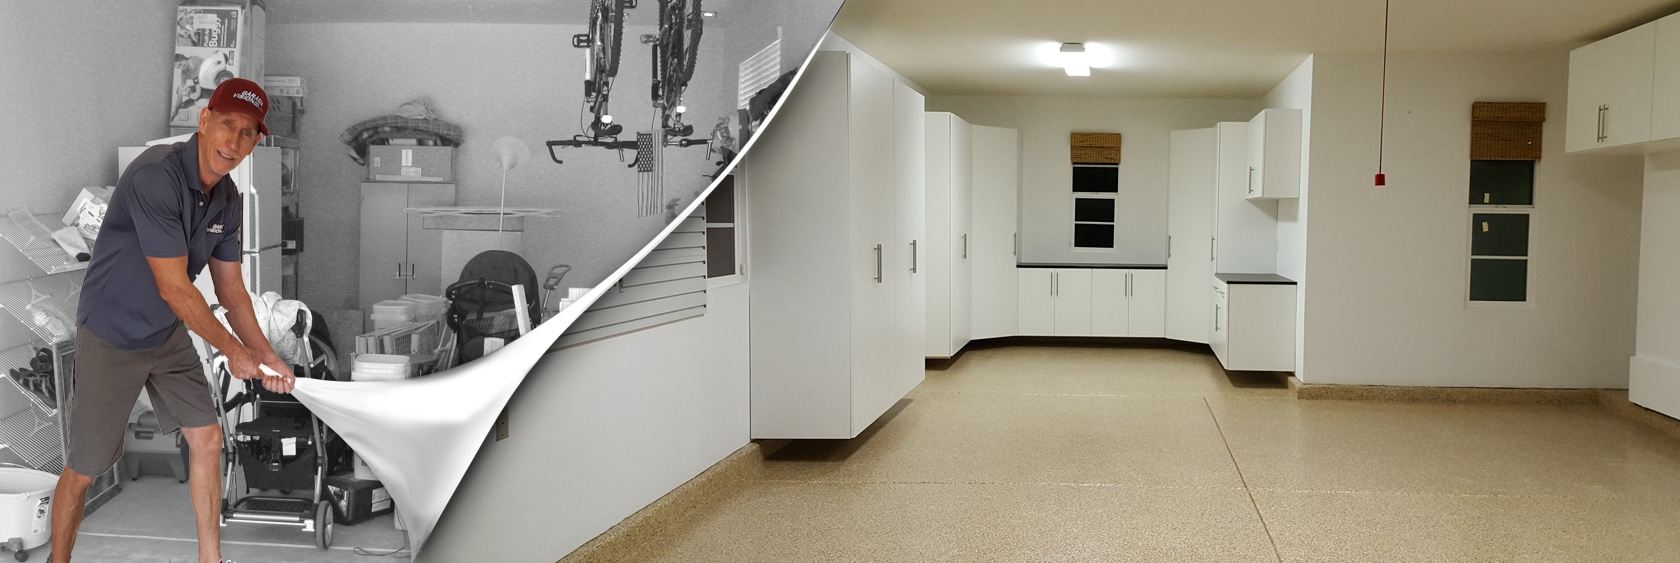 Garage Floor Epoxy Steps Garage Flooring And Cabinets In Solana Beach California Garage